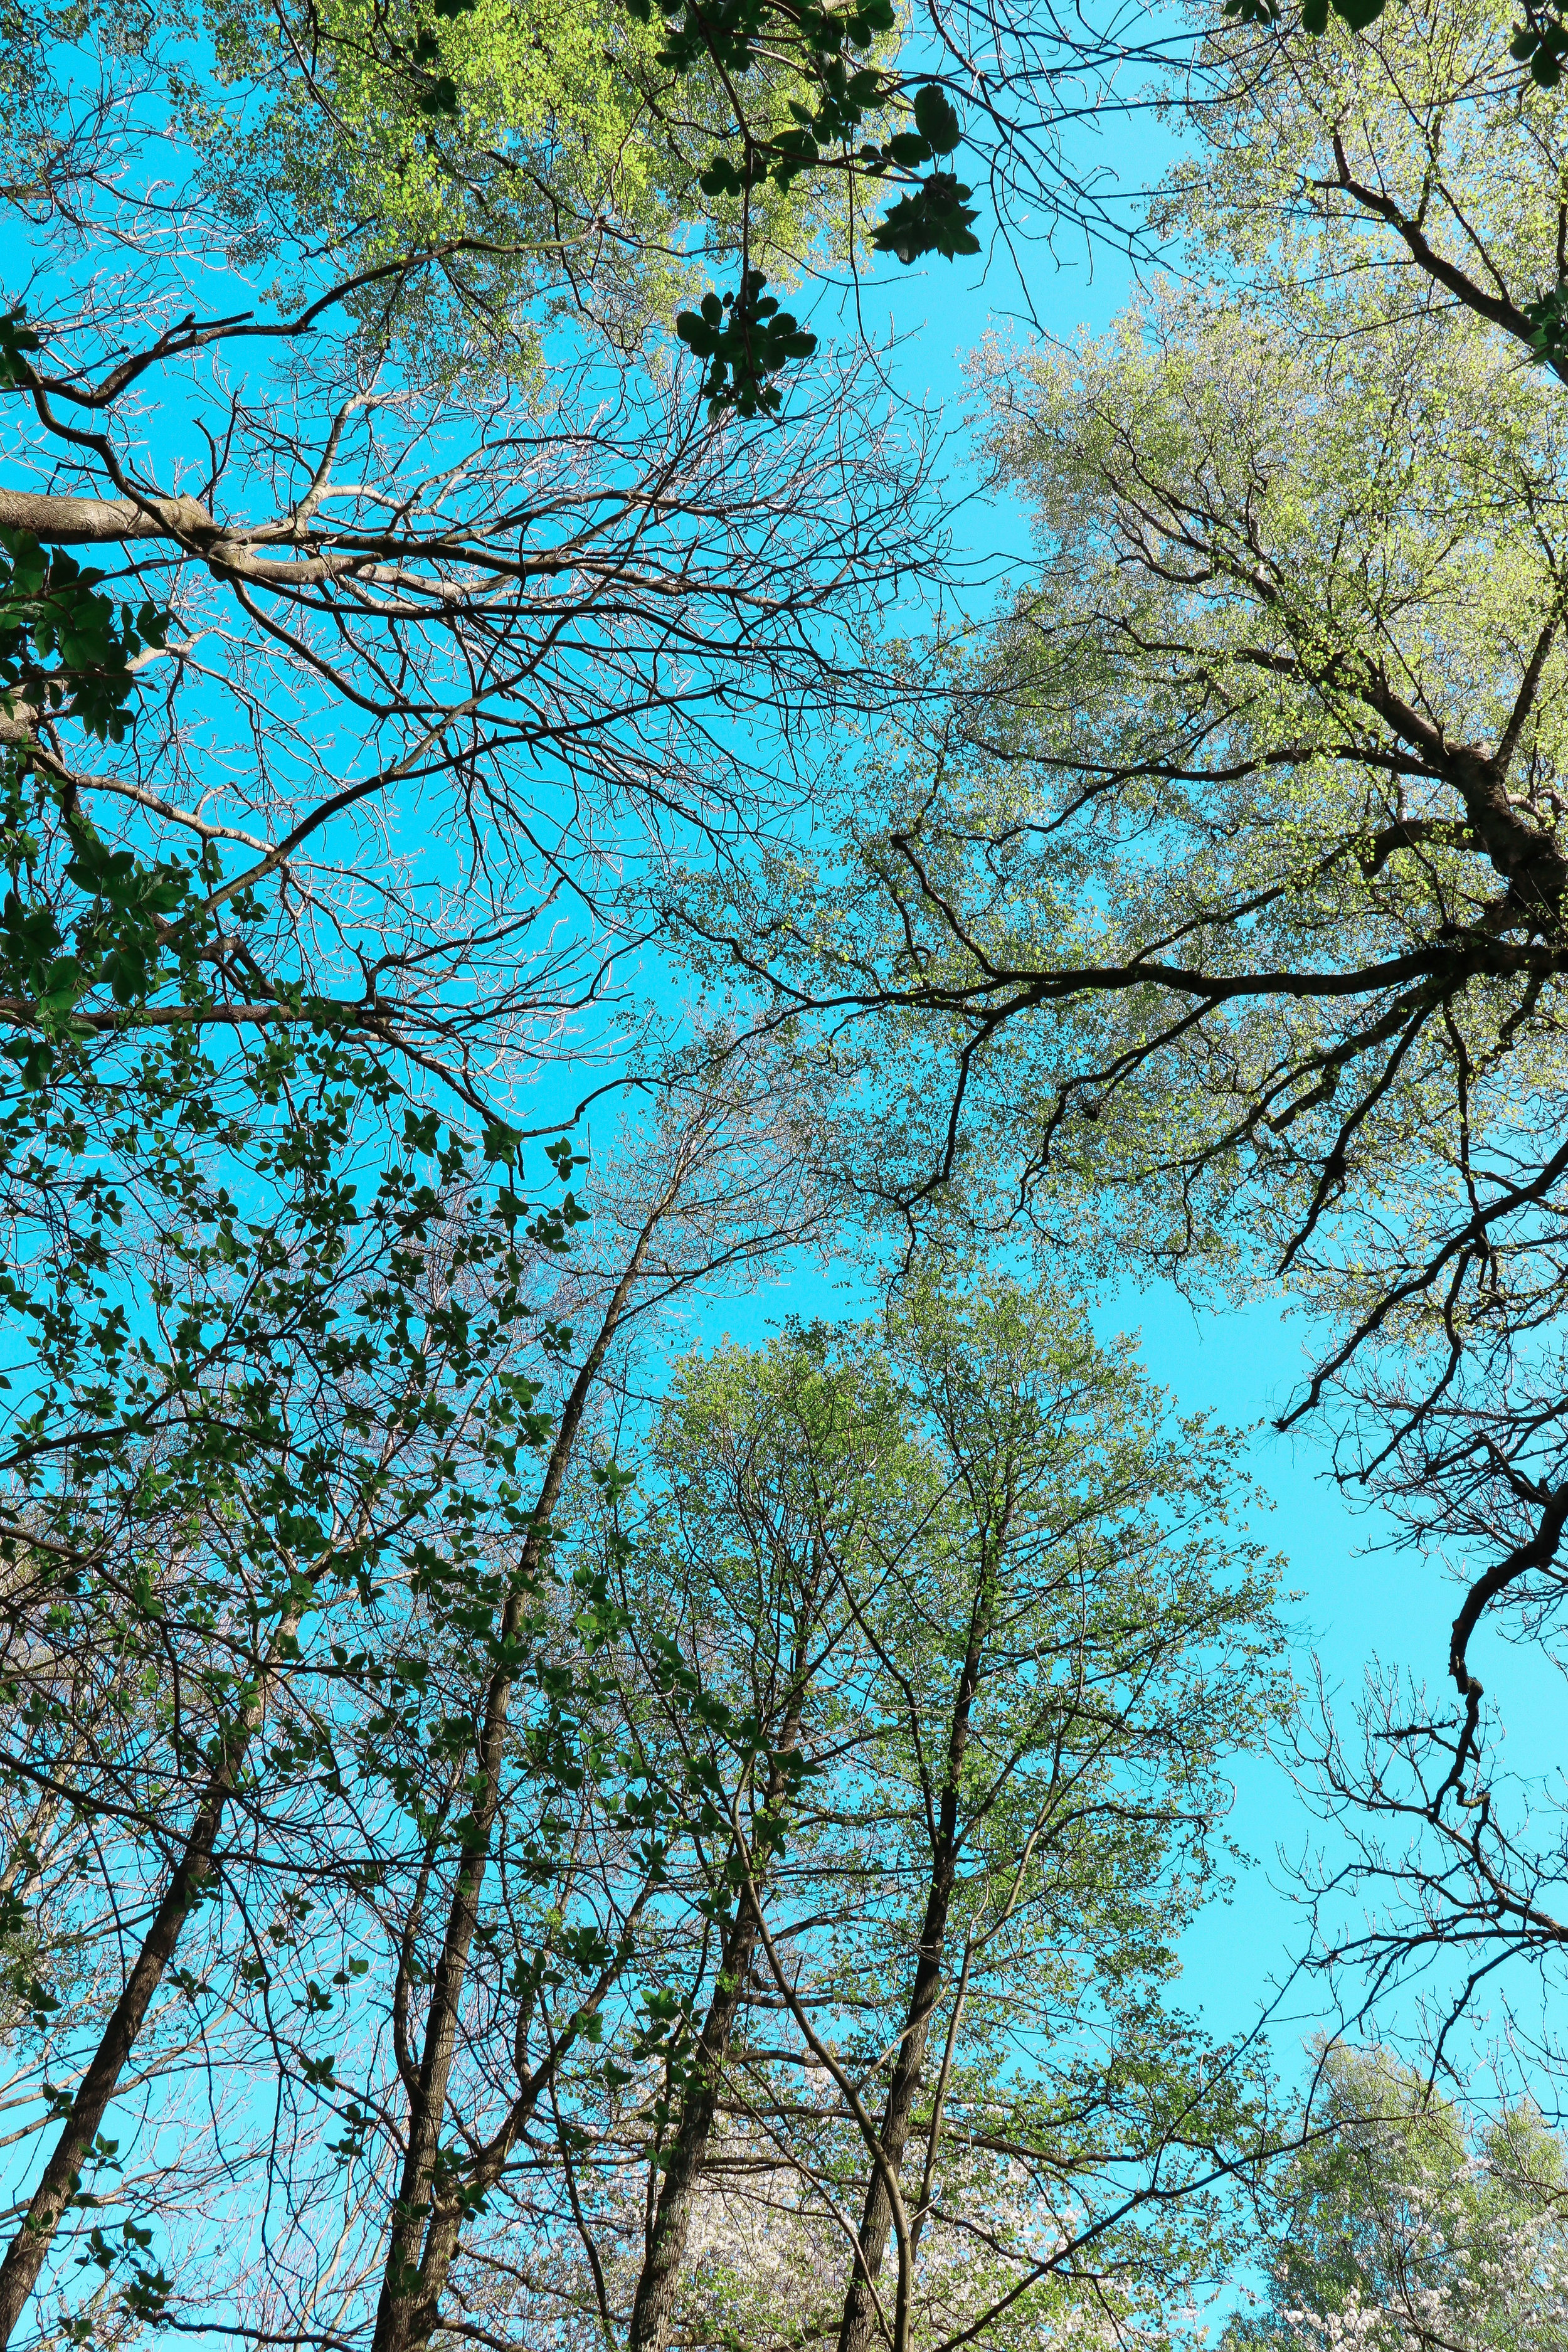 Blue sky and forest in Sweden by Linda Haggh.jpg